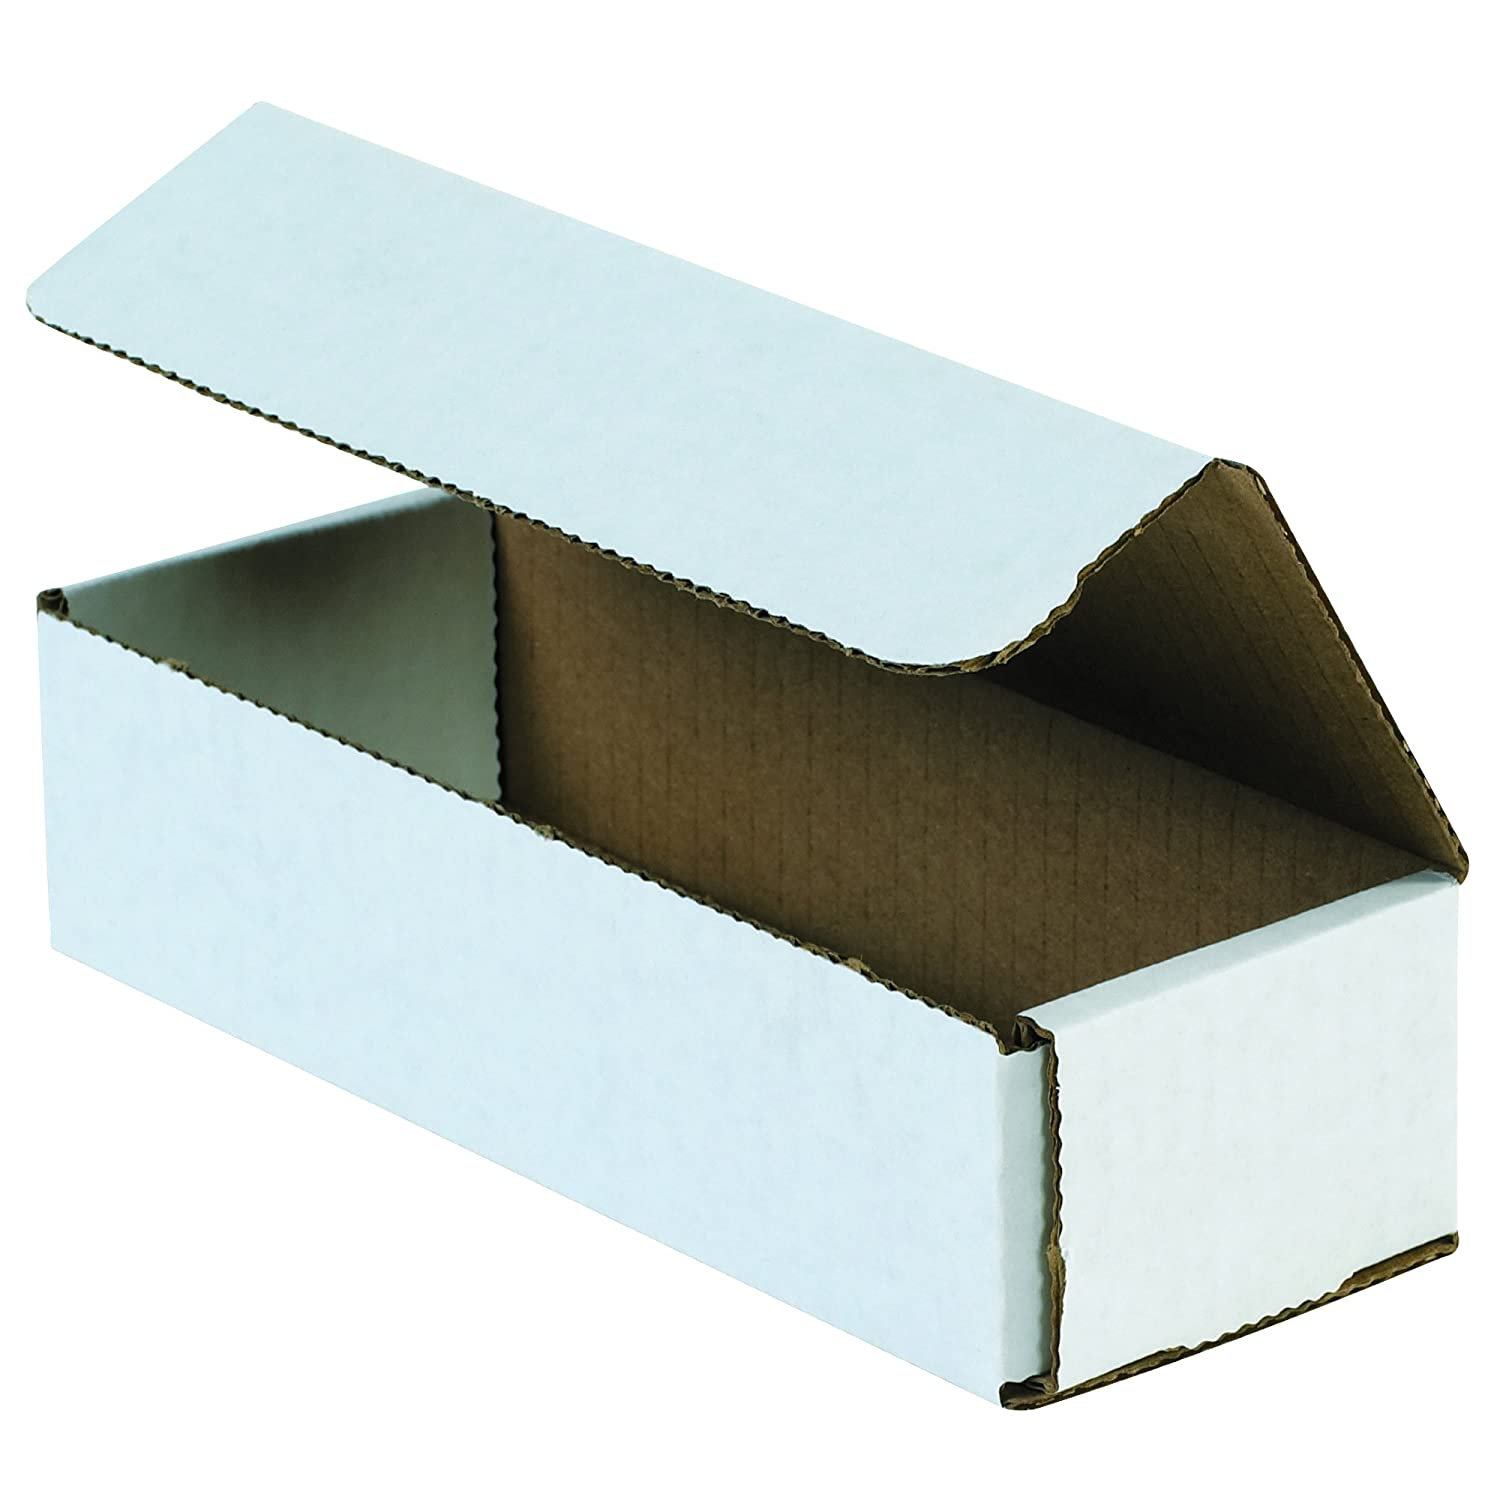 NEW Boxes Fast BFM832 Corrugated Cardboard Mailers Free Shipping Cheap Bargain Gift 3 x 8 Inches 2